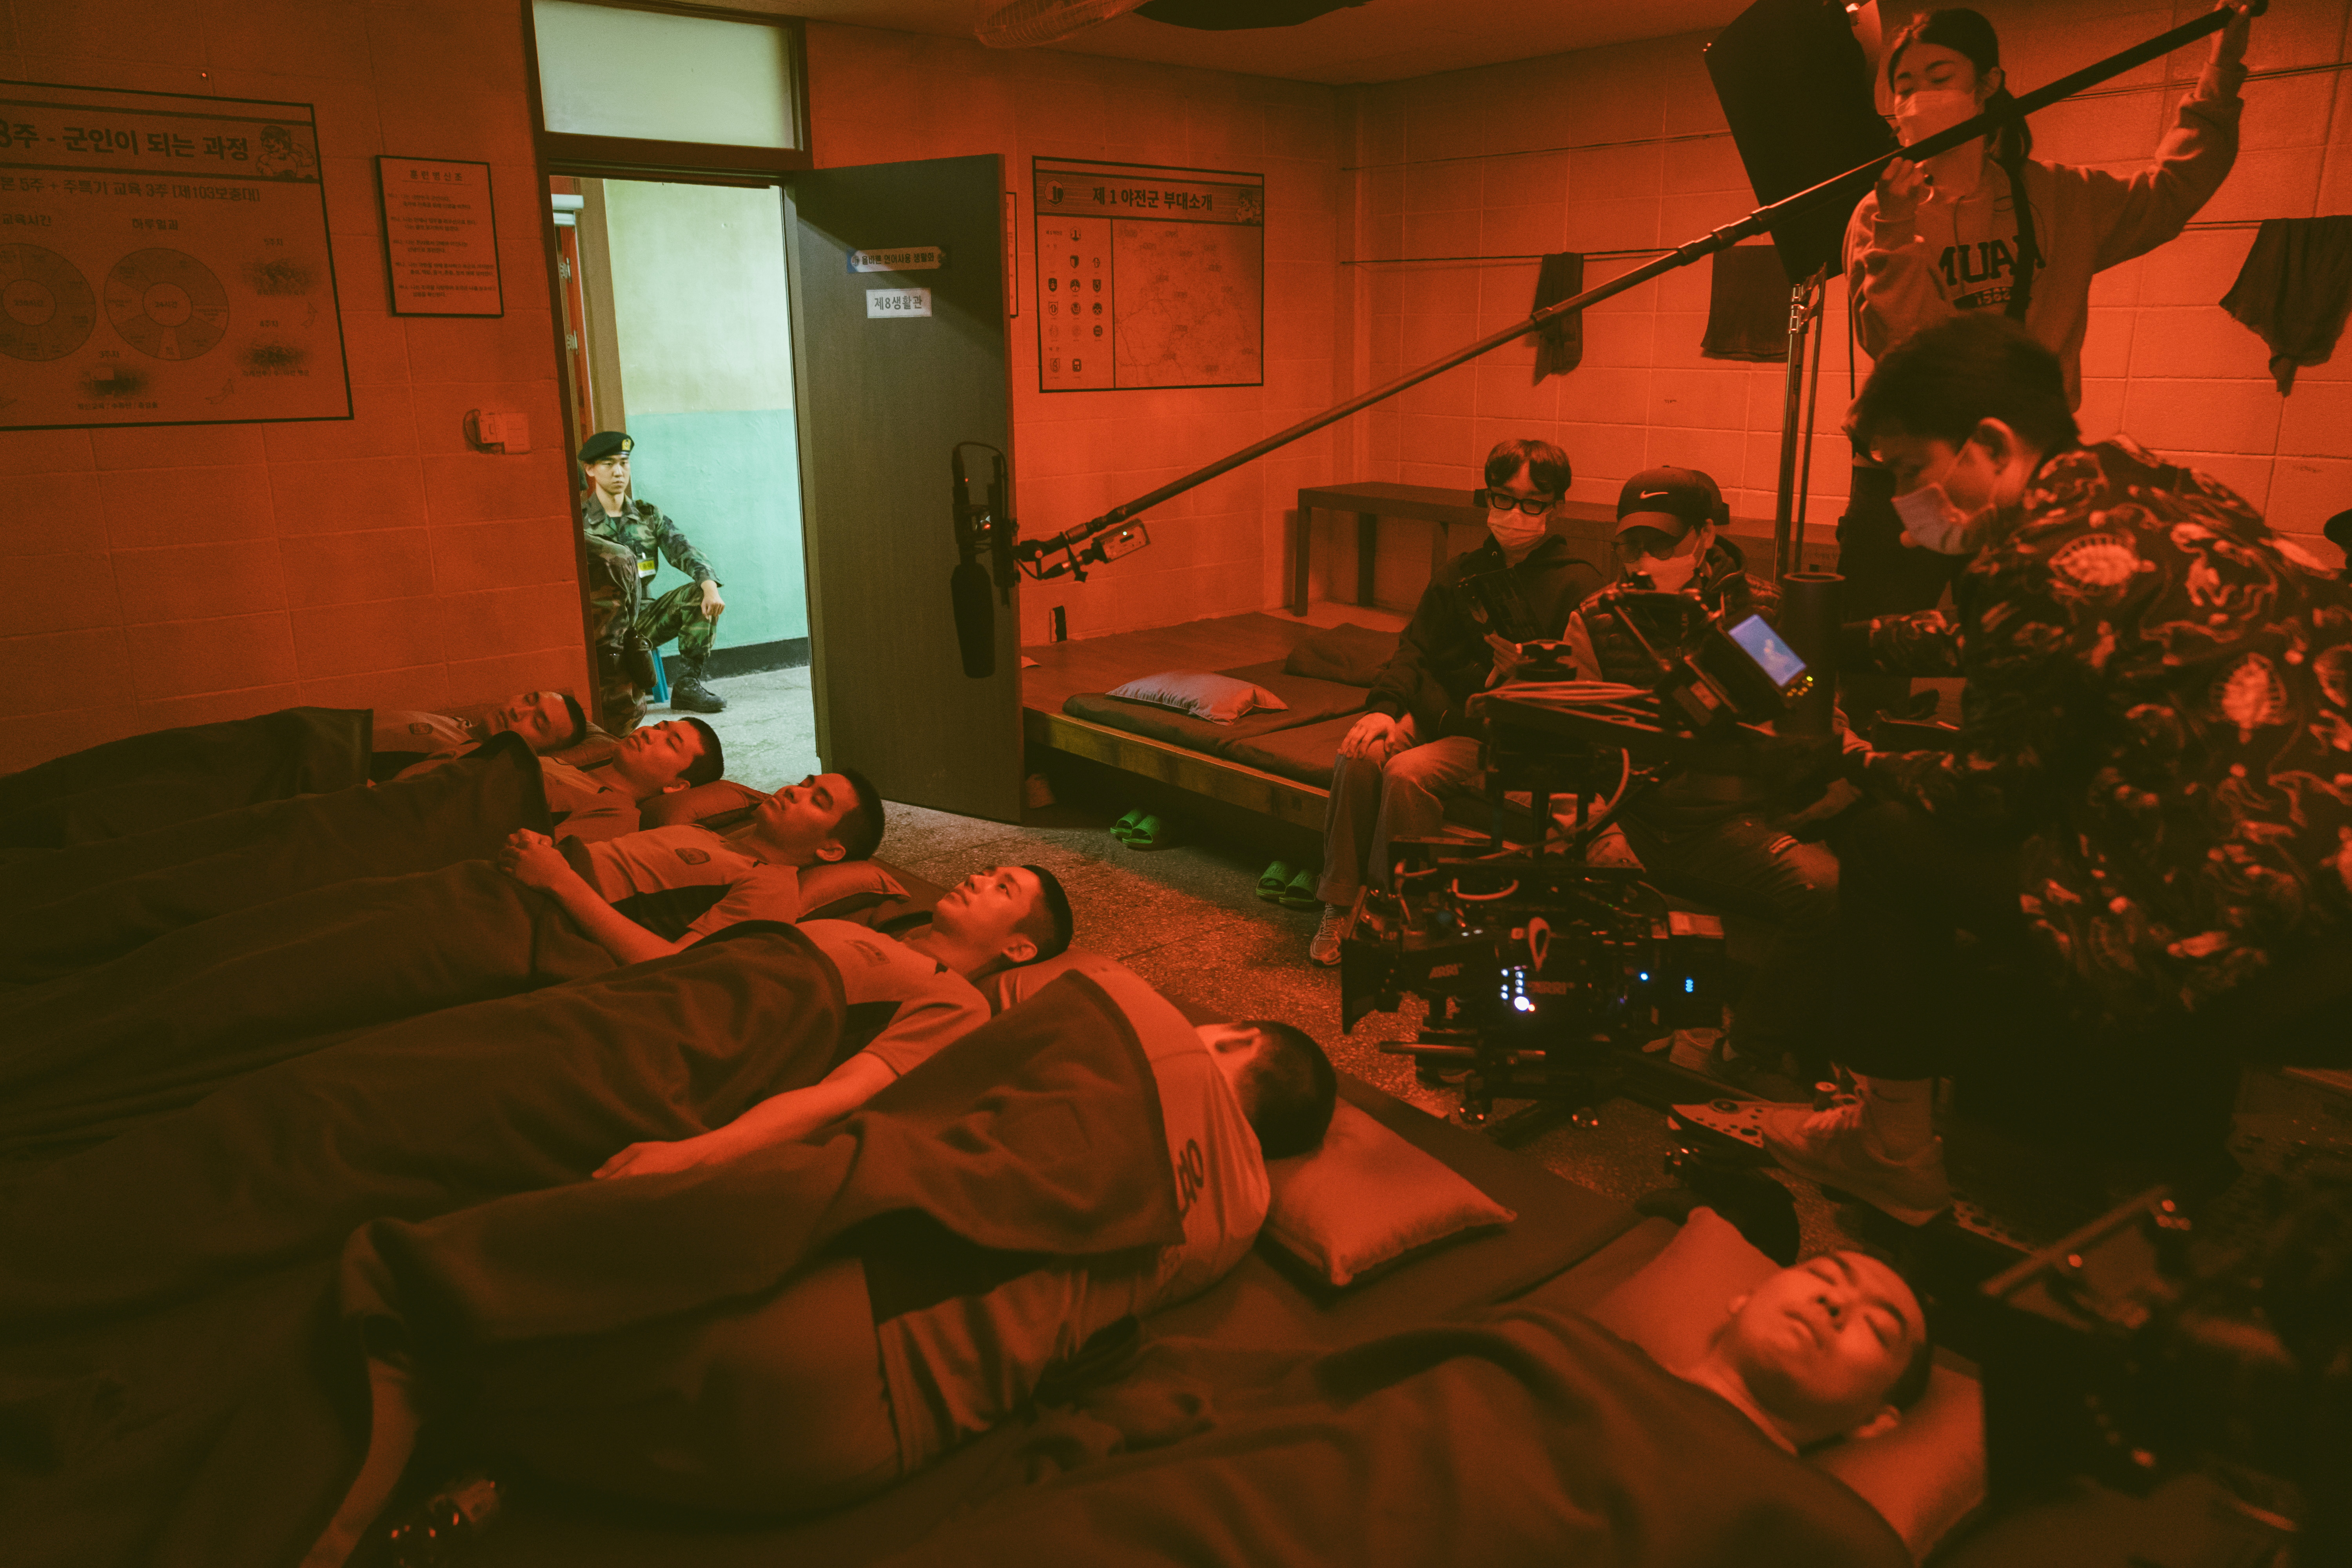 A still image shows a behind the scenes of Netflix series entitled